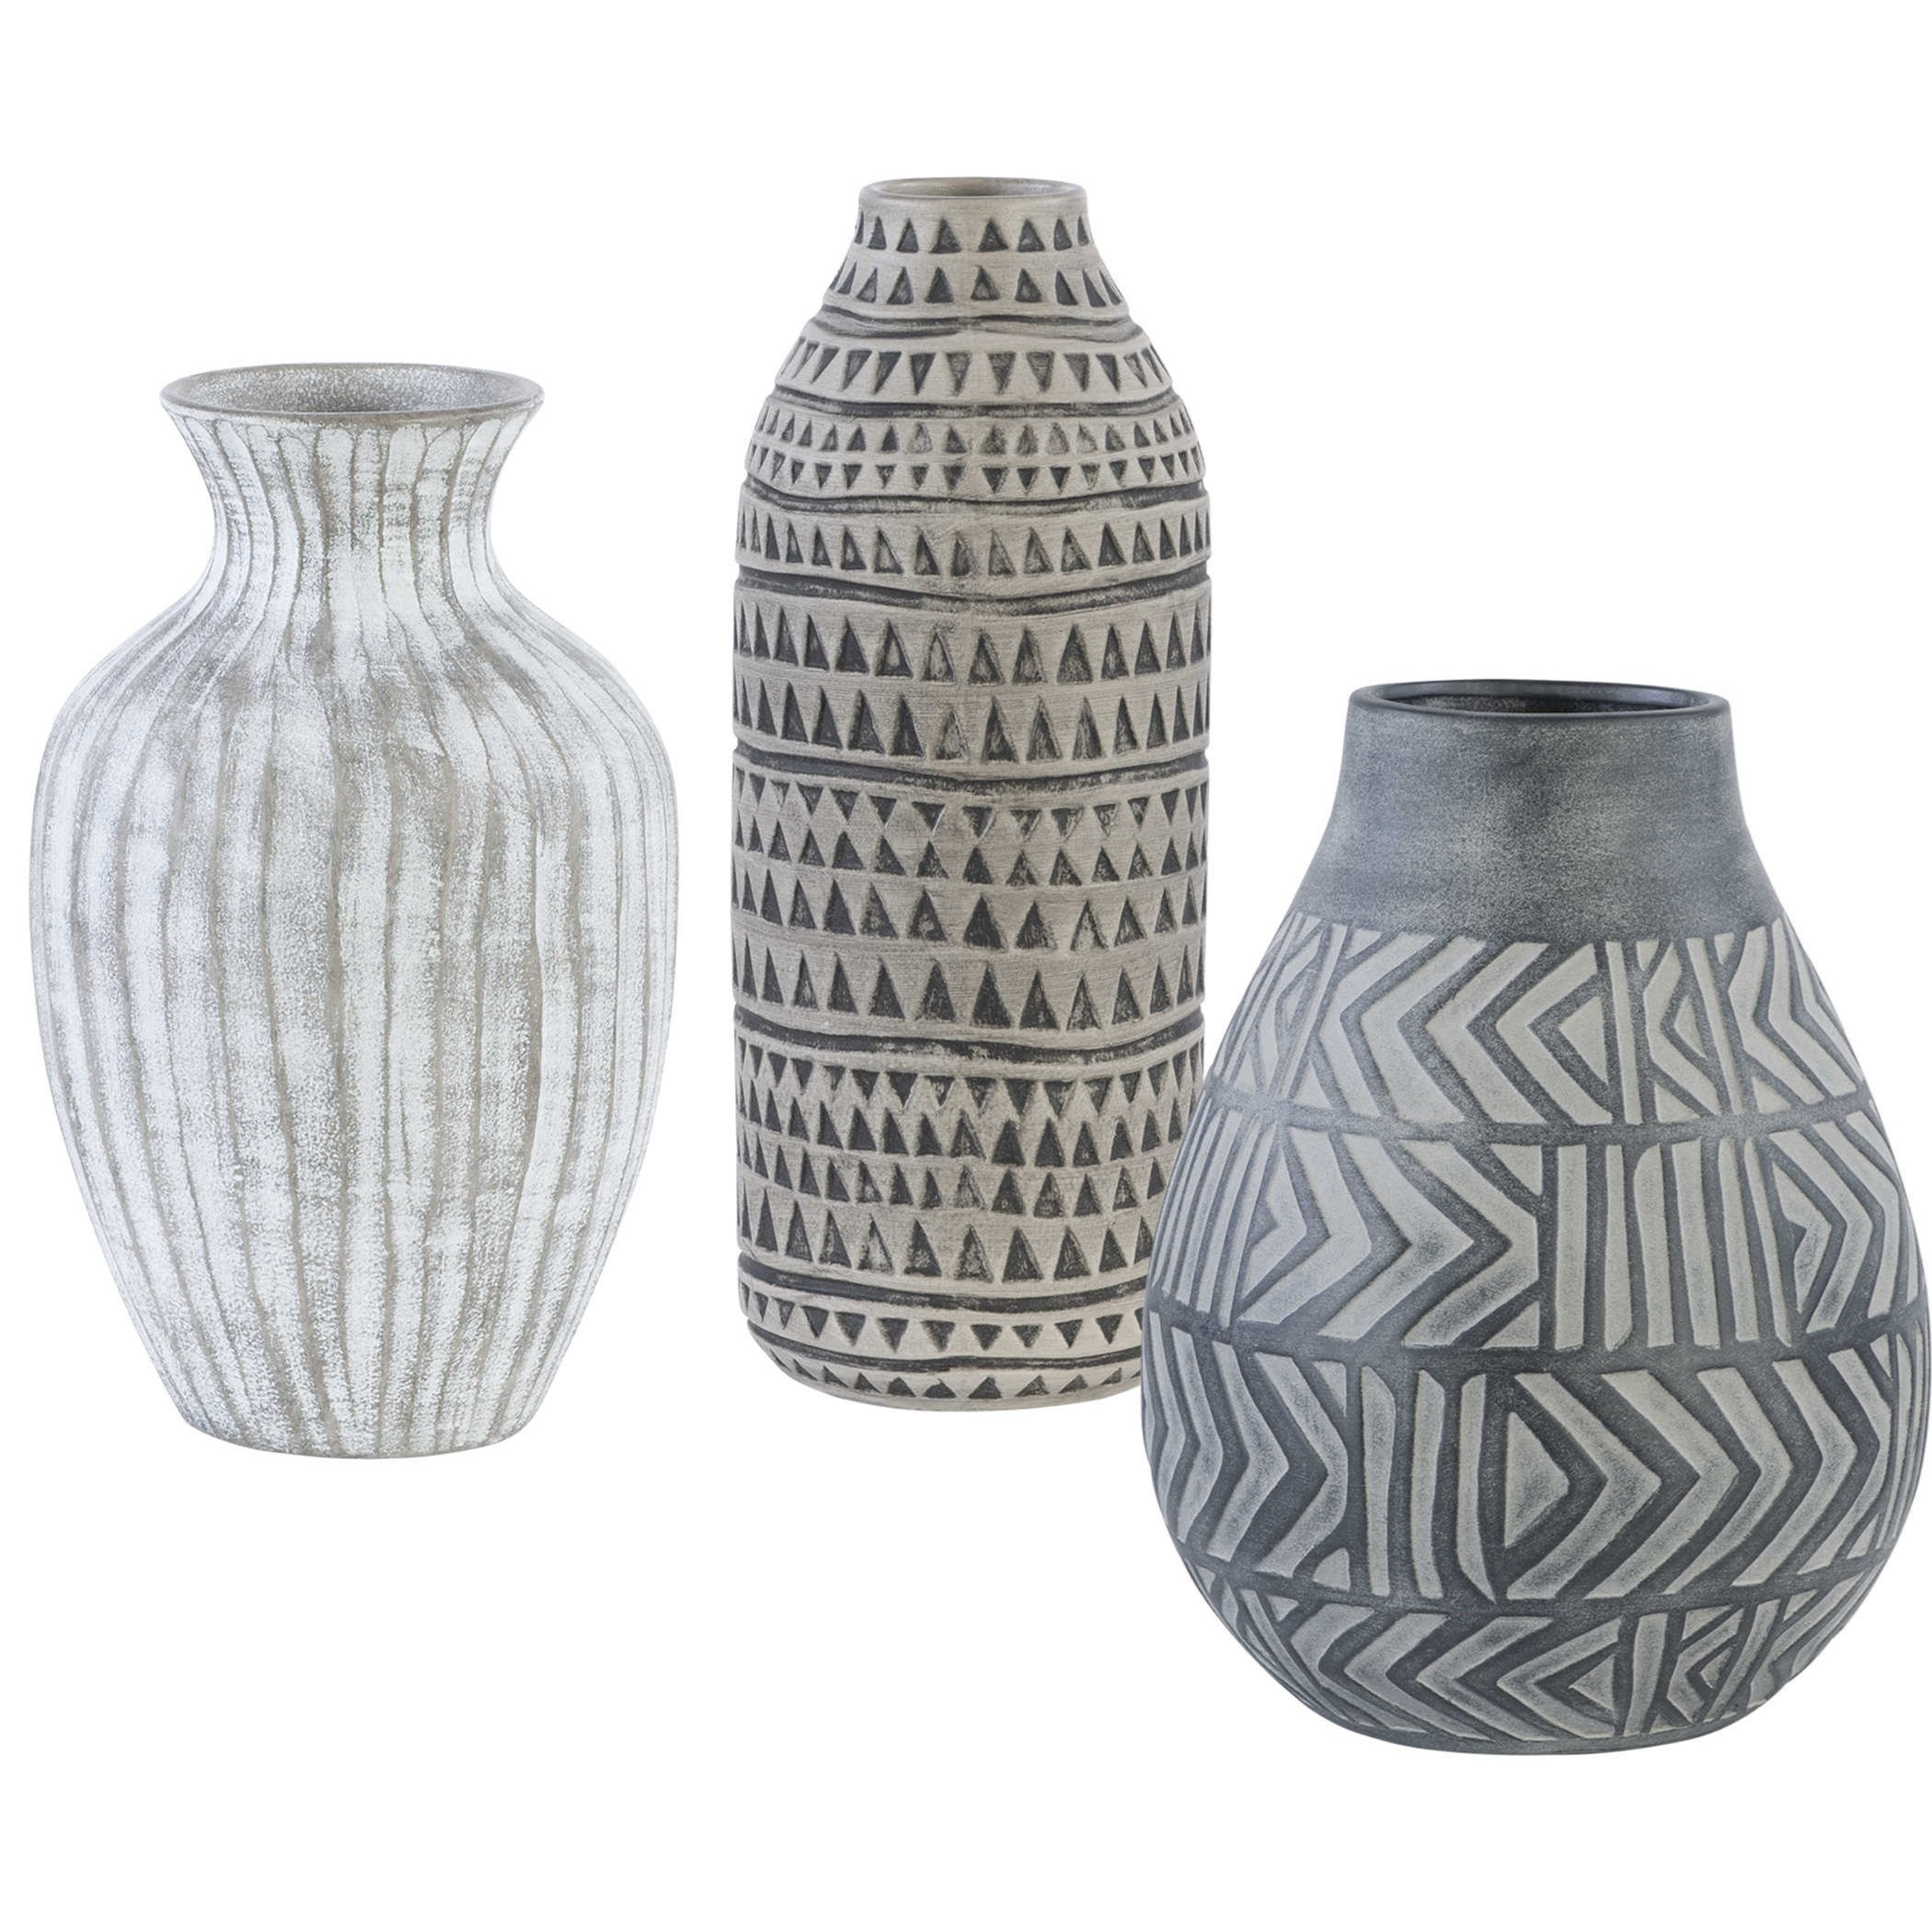 Accessories - Vases and Urns Natchez Geometric Vases, S/3 by Uttermost at Suburban Furniture